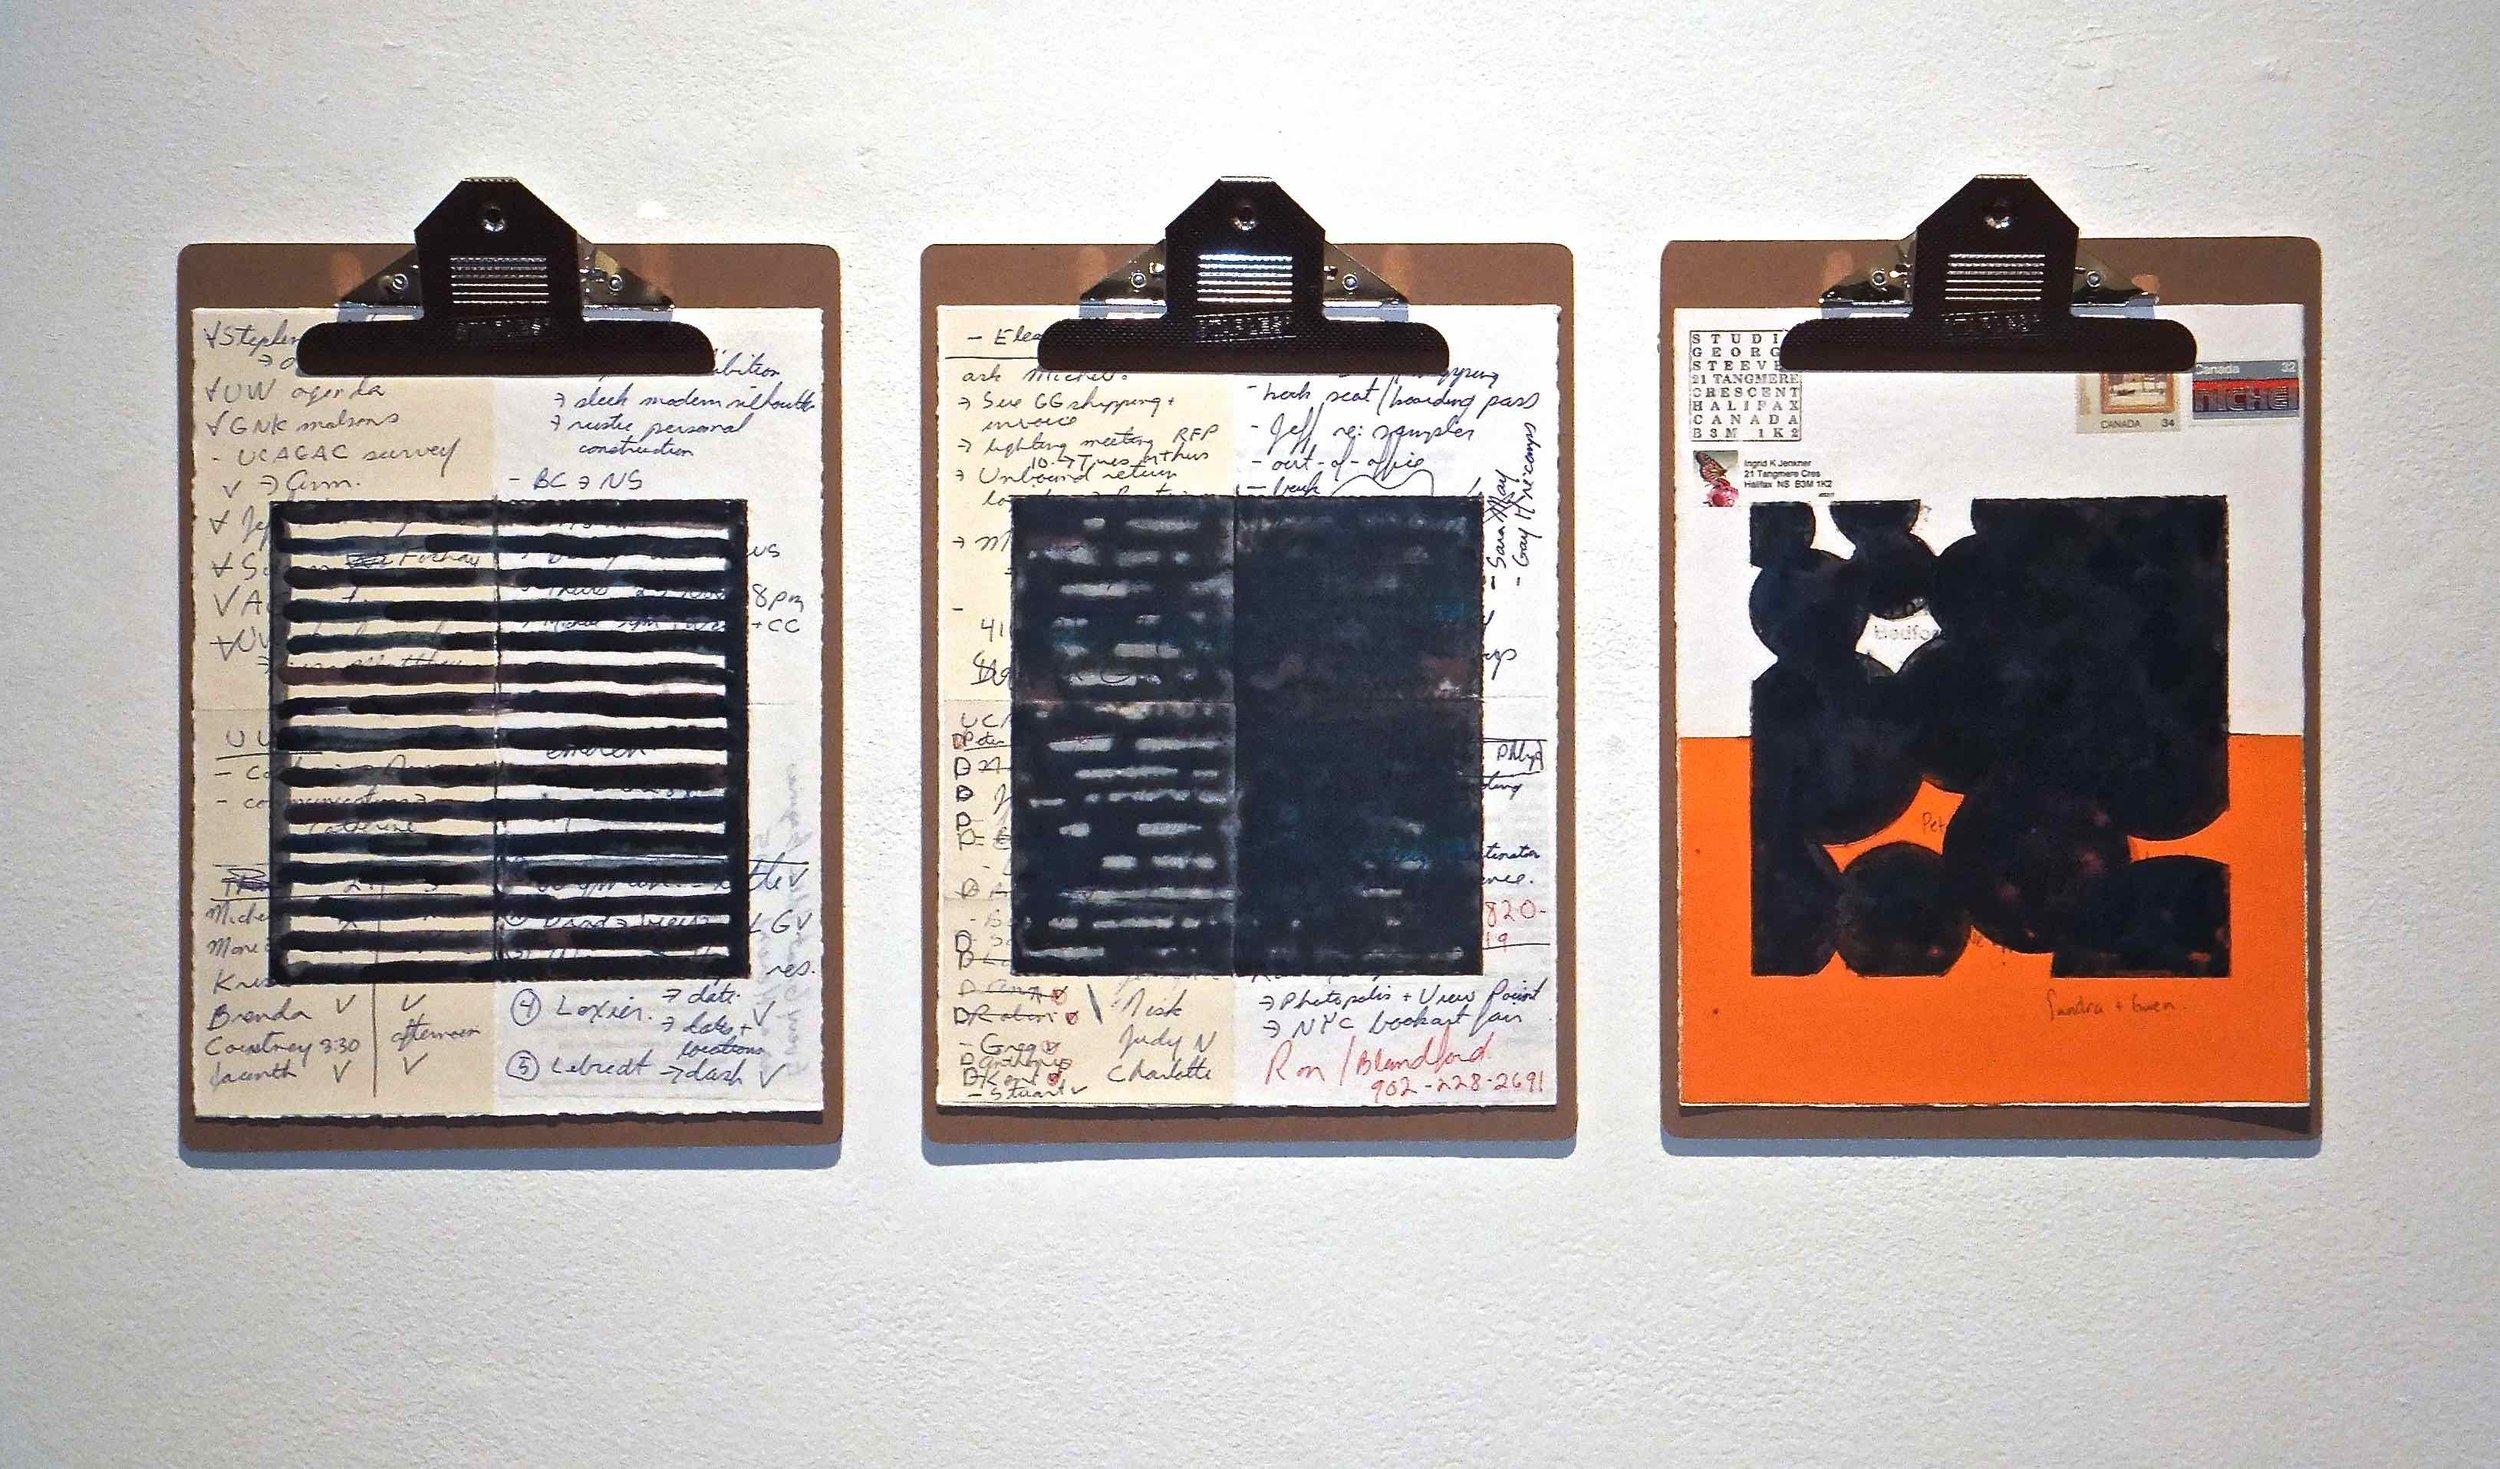 """Work Force #3, 2014, encaustic, mixed media collage on paper, mounted on 3 commercial clipboards, 13"""" × 39"""", set of clipboards depicted counts as one artwork, 225 CAD"""